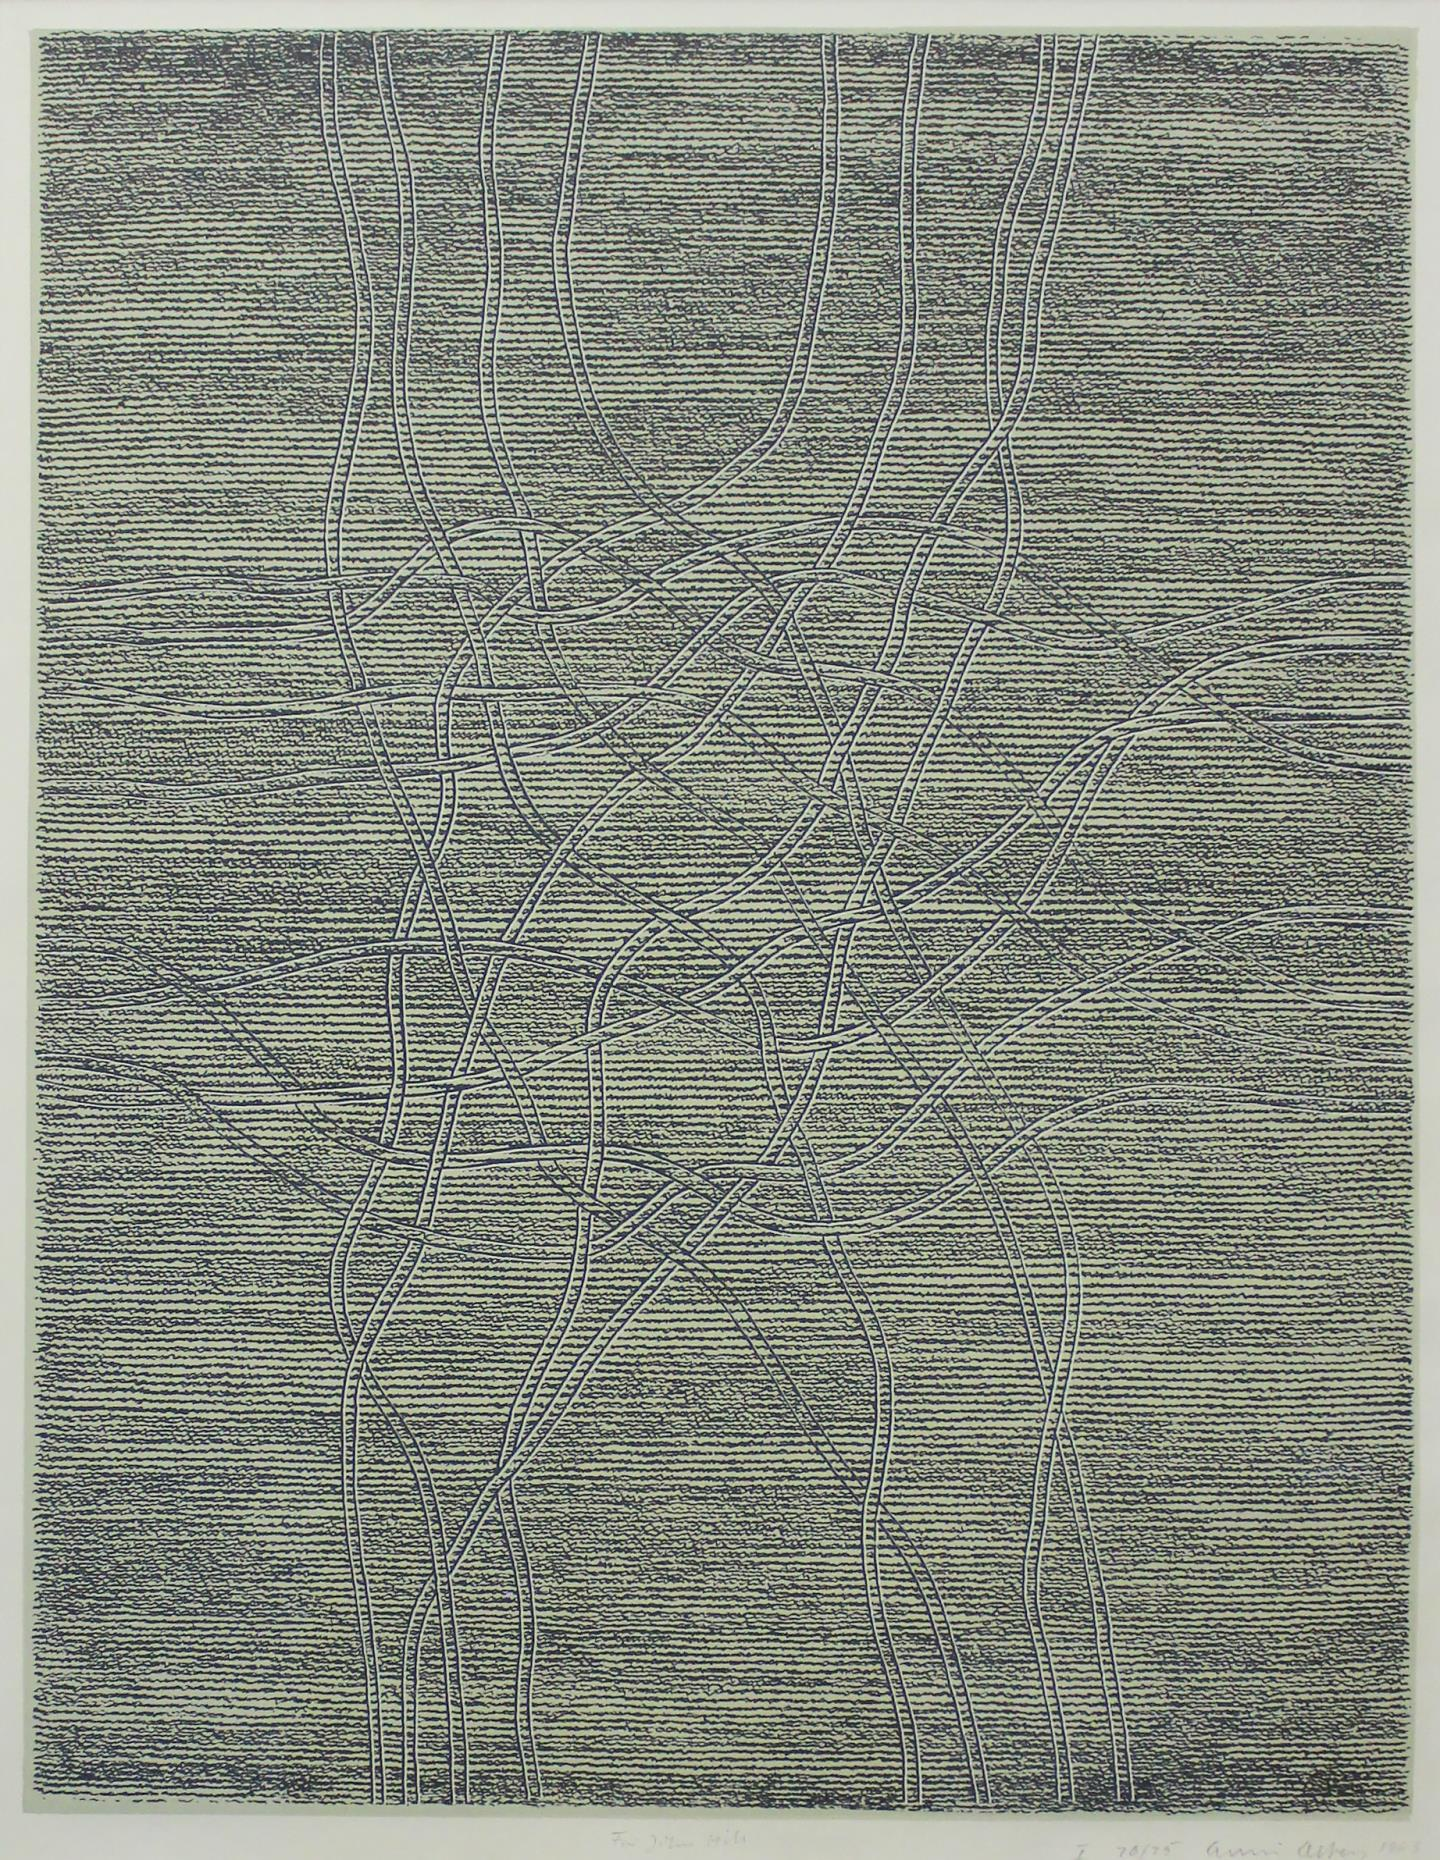 http://thejohnsoncollection.org/anni-albers-untitled-1/